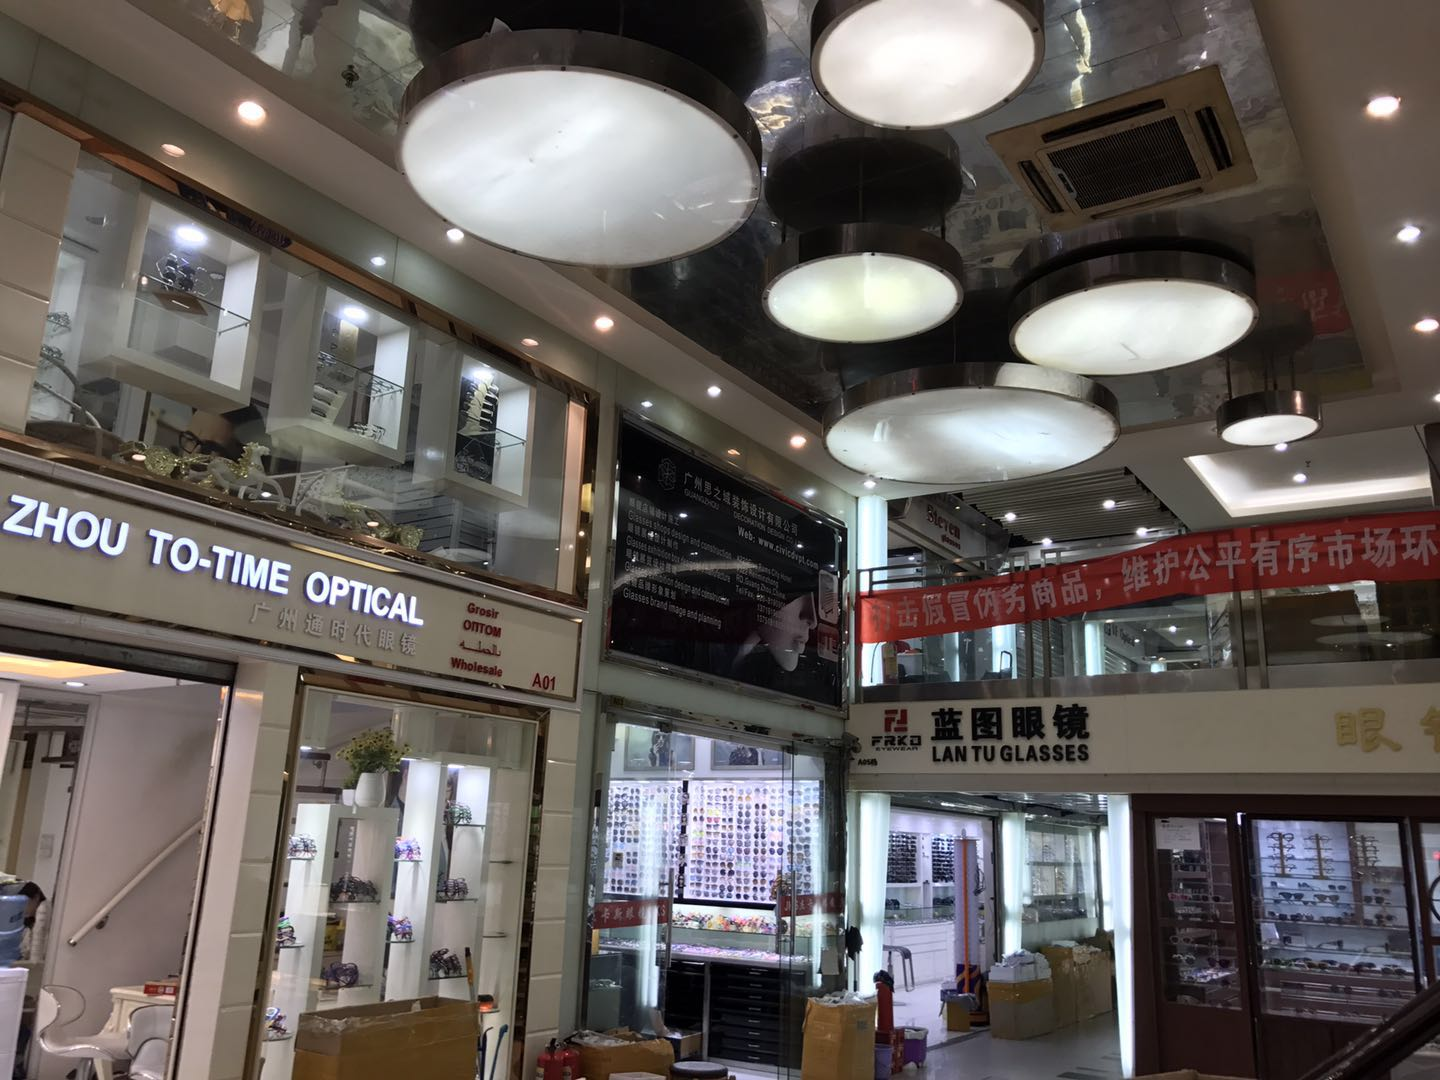 Yuehe international optical centre in Guangzhou-2